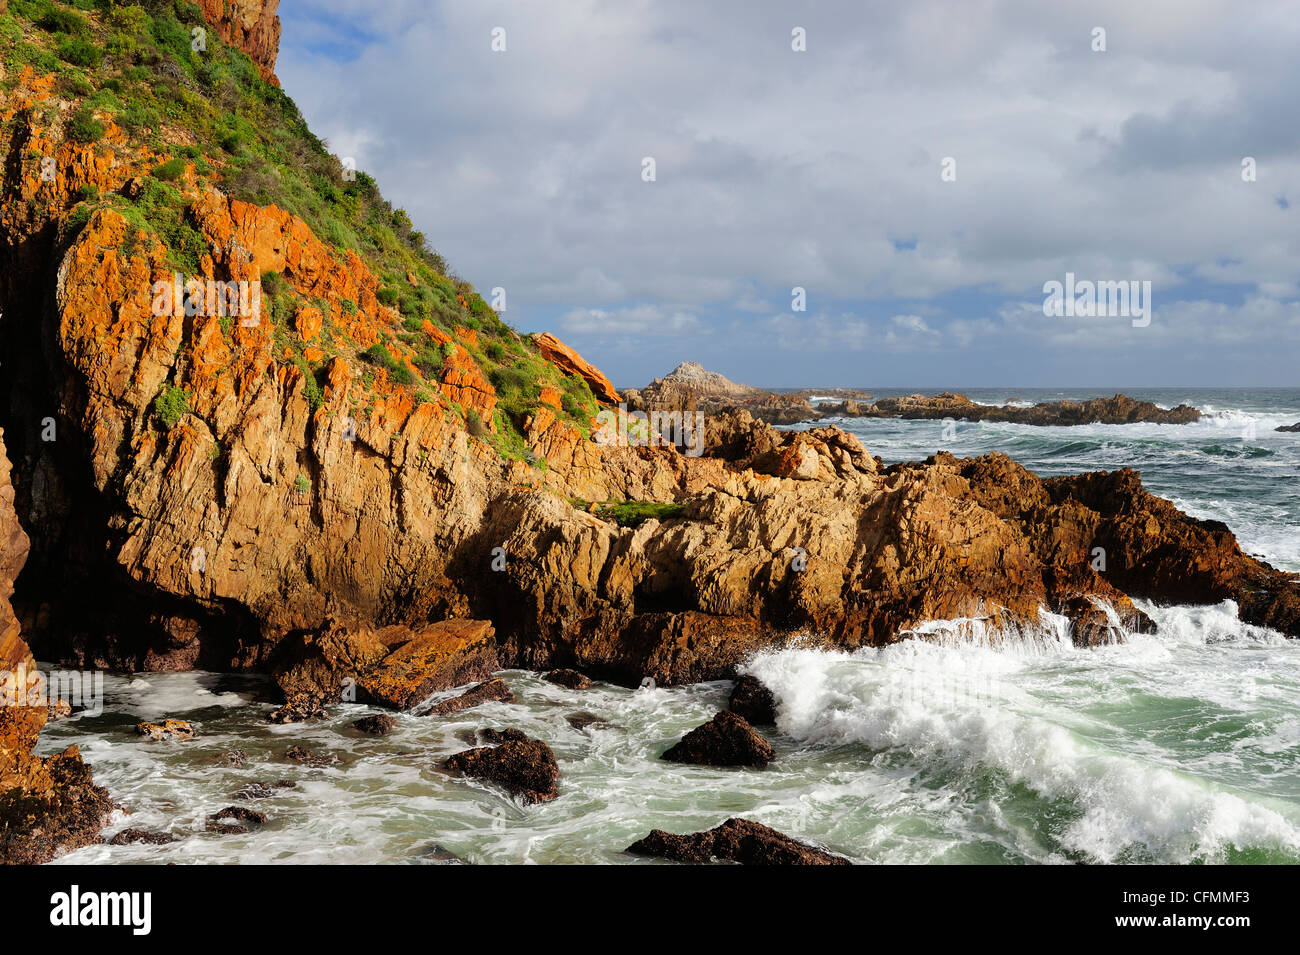 Ravishing The Heads At Knysna On The Garden Route Western Cape South  With Lovely Stock Photo  The Heads At Knysna On The Garden Route Western Cape South  Africa With Captivating Things To Do In Garden Route Also Zen Garden Painting In Addition Garden Centre A And Courtyard Garden Design As Well As Malvern Garden Buildings Additionally Nightclubs Covent Garden From Alamycom With   Lovely The Heads At Knysna On The Garden Route Western Cape South  With Captivating Stock Photo  The Heads At Knysna On The Garden Route Western Cape South  Africa And Ravishing Things To Do In Garden Route Also Zen Garden Painting In Addition Garden Centre A From Alamycom